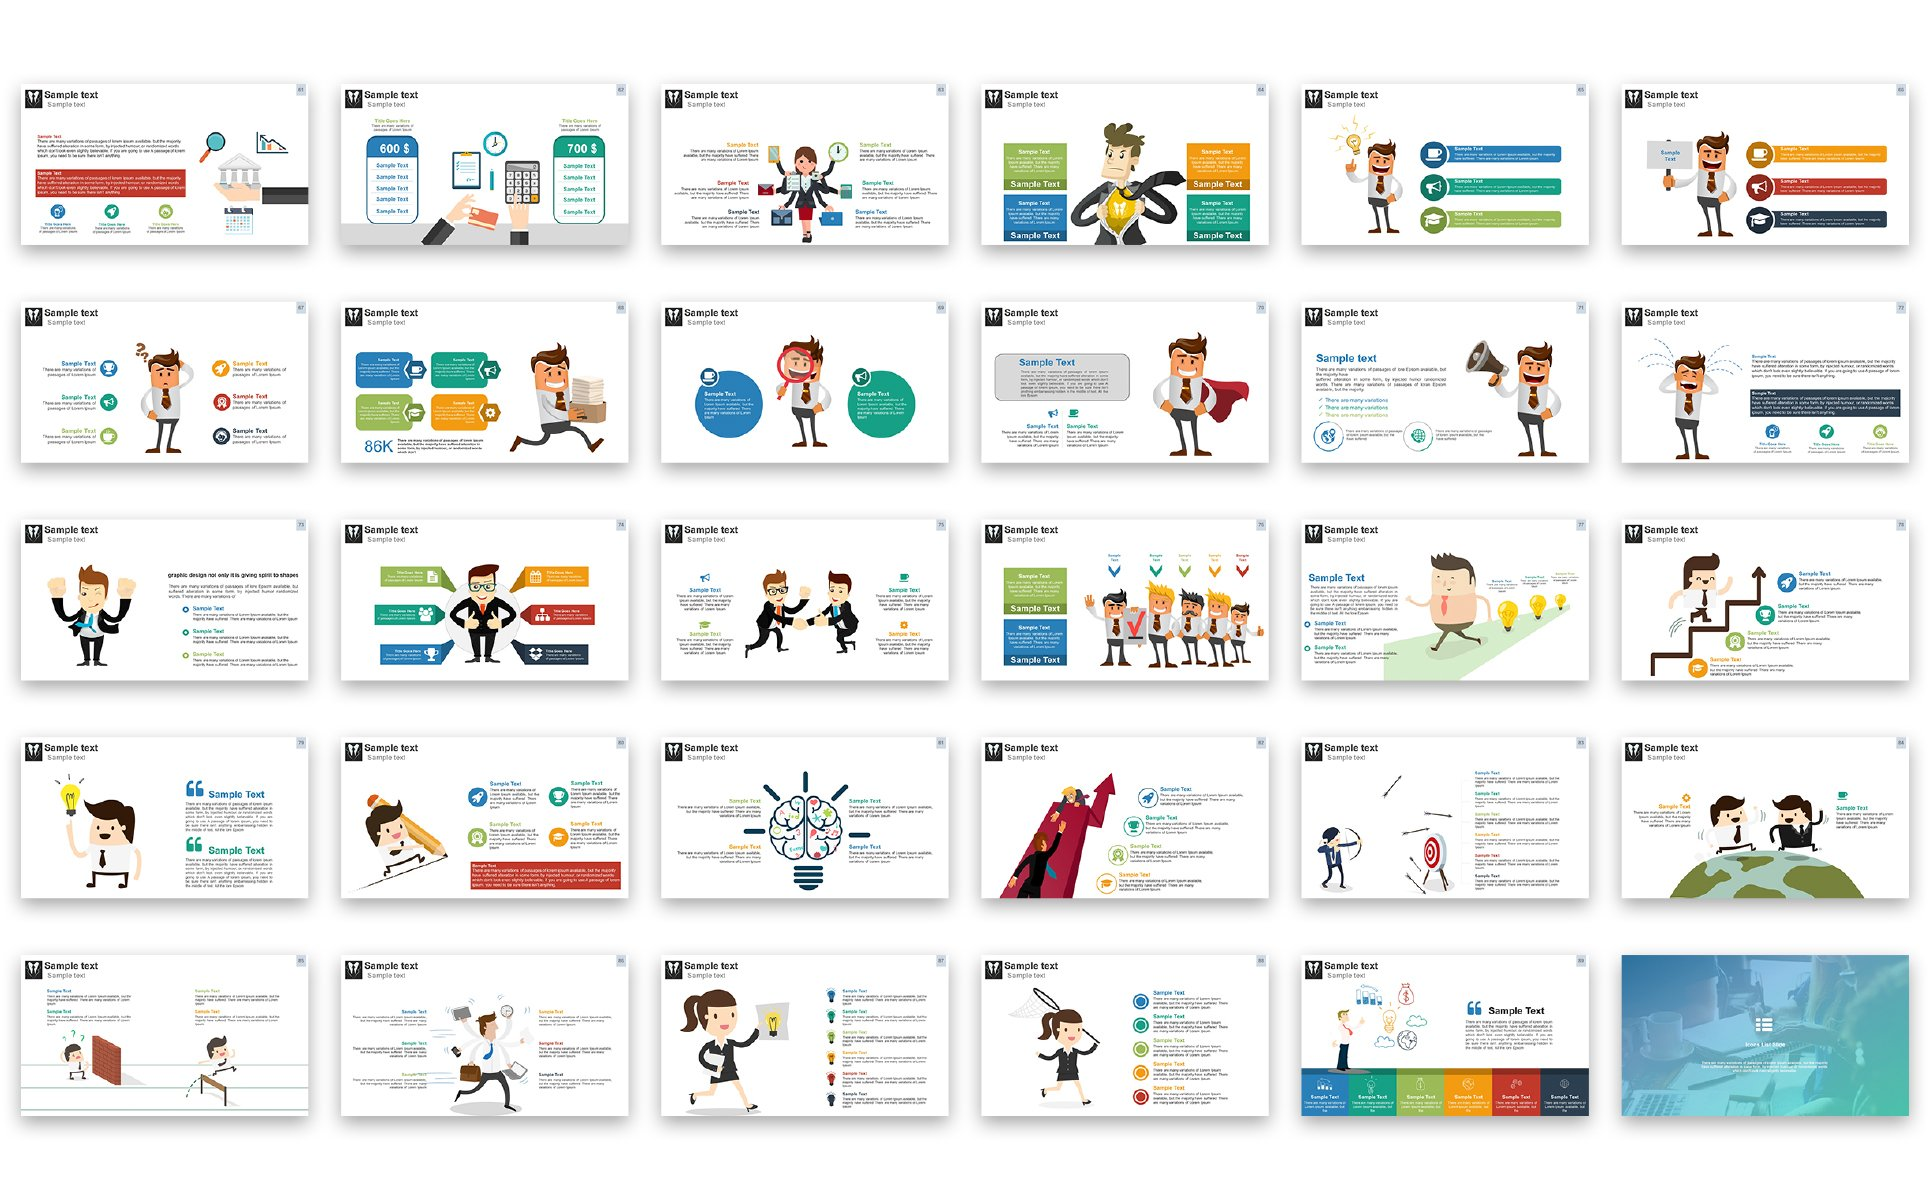 Business presentation powerpoint template 67451 business presentation powerpoint template big screenshot fbccfo Image collections